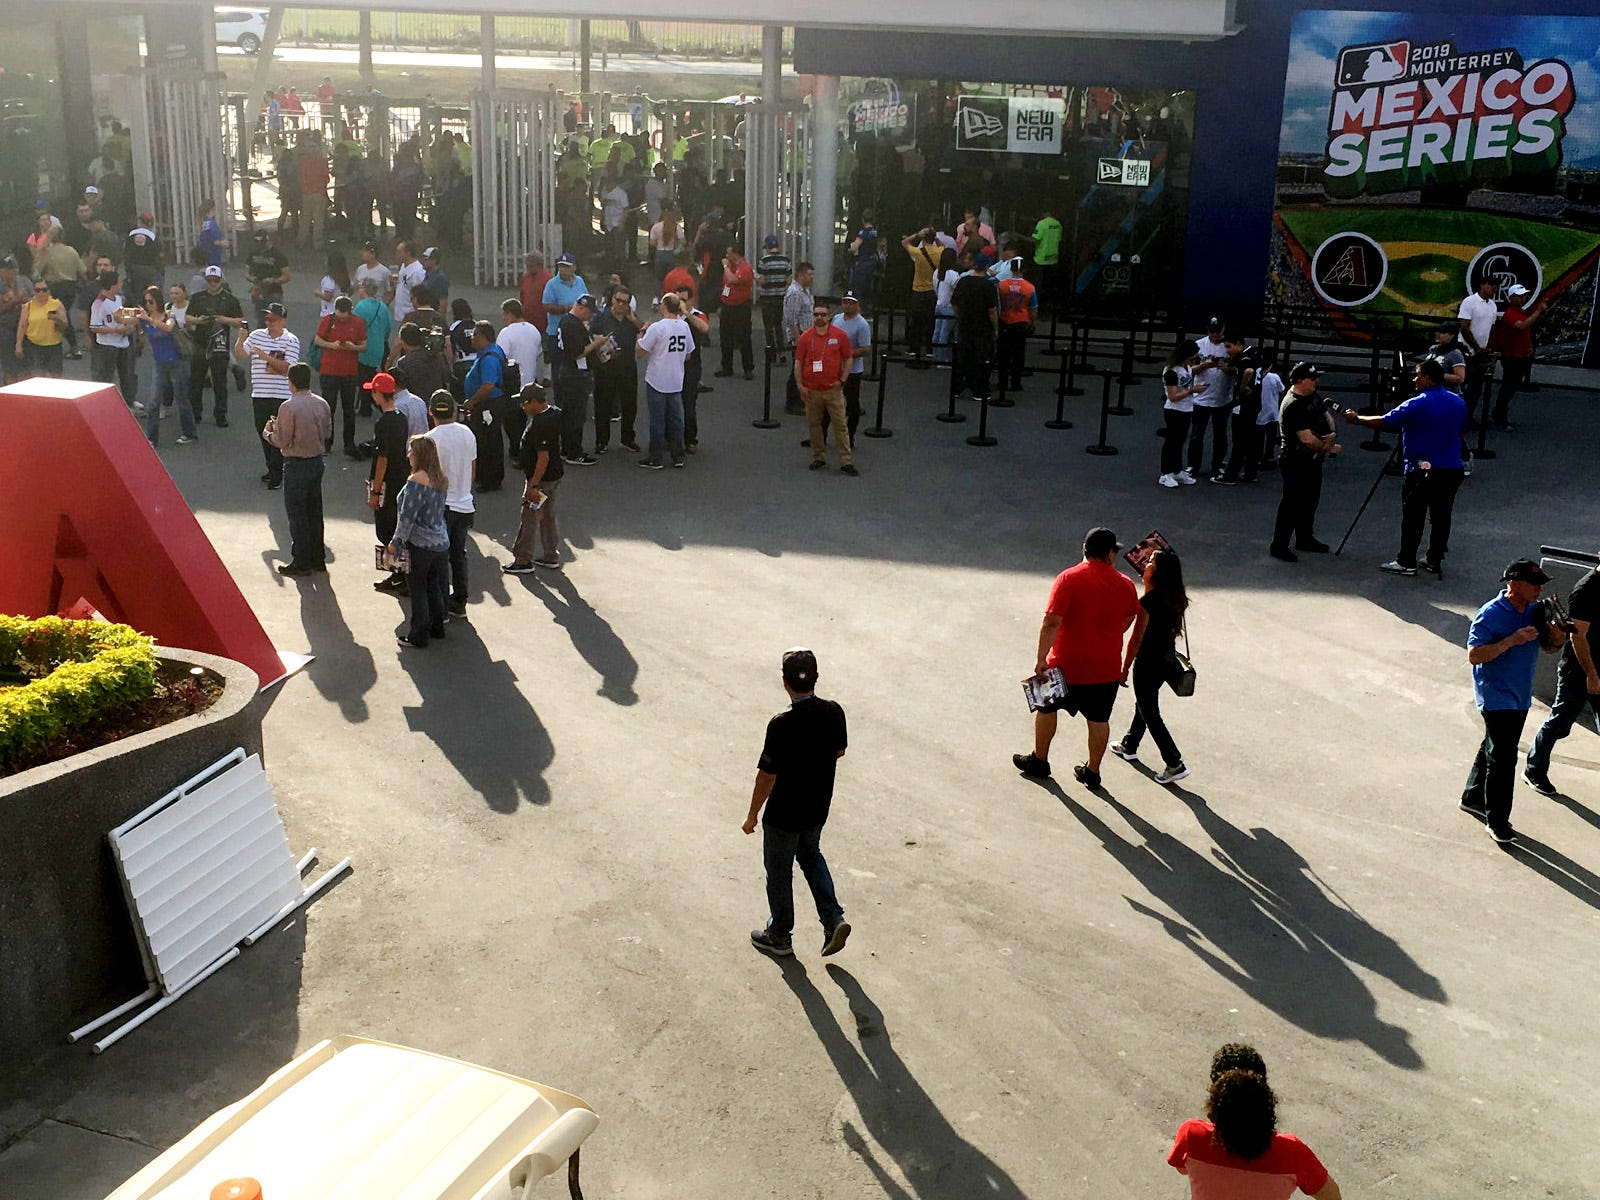 Fans stream into the baseball stadium in Monterrey, Mexico, to watch a spring training game between the Arizona Diamondbacks and the Colorado Rockies.